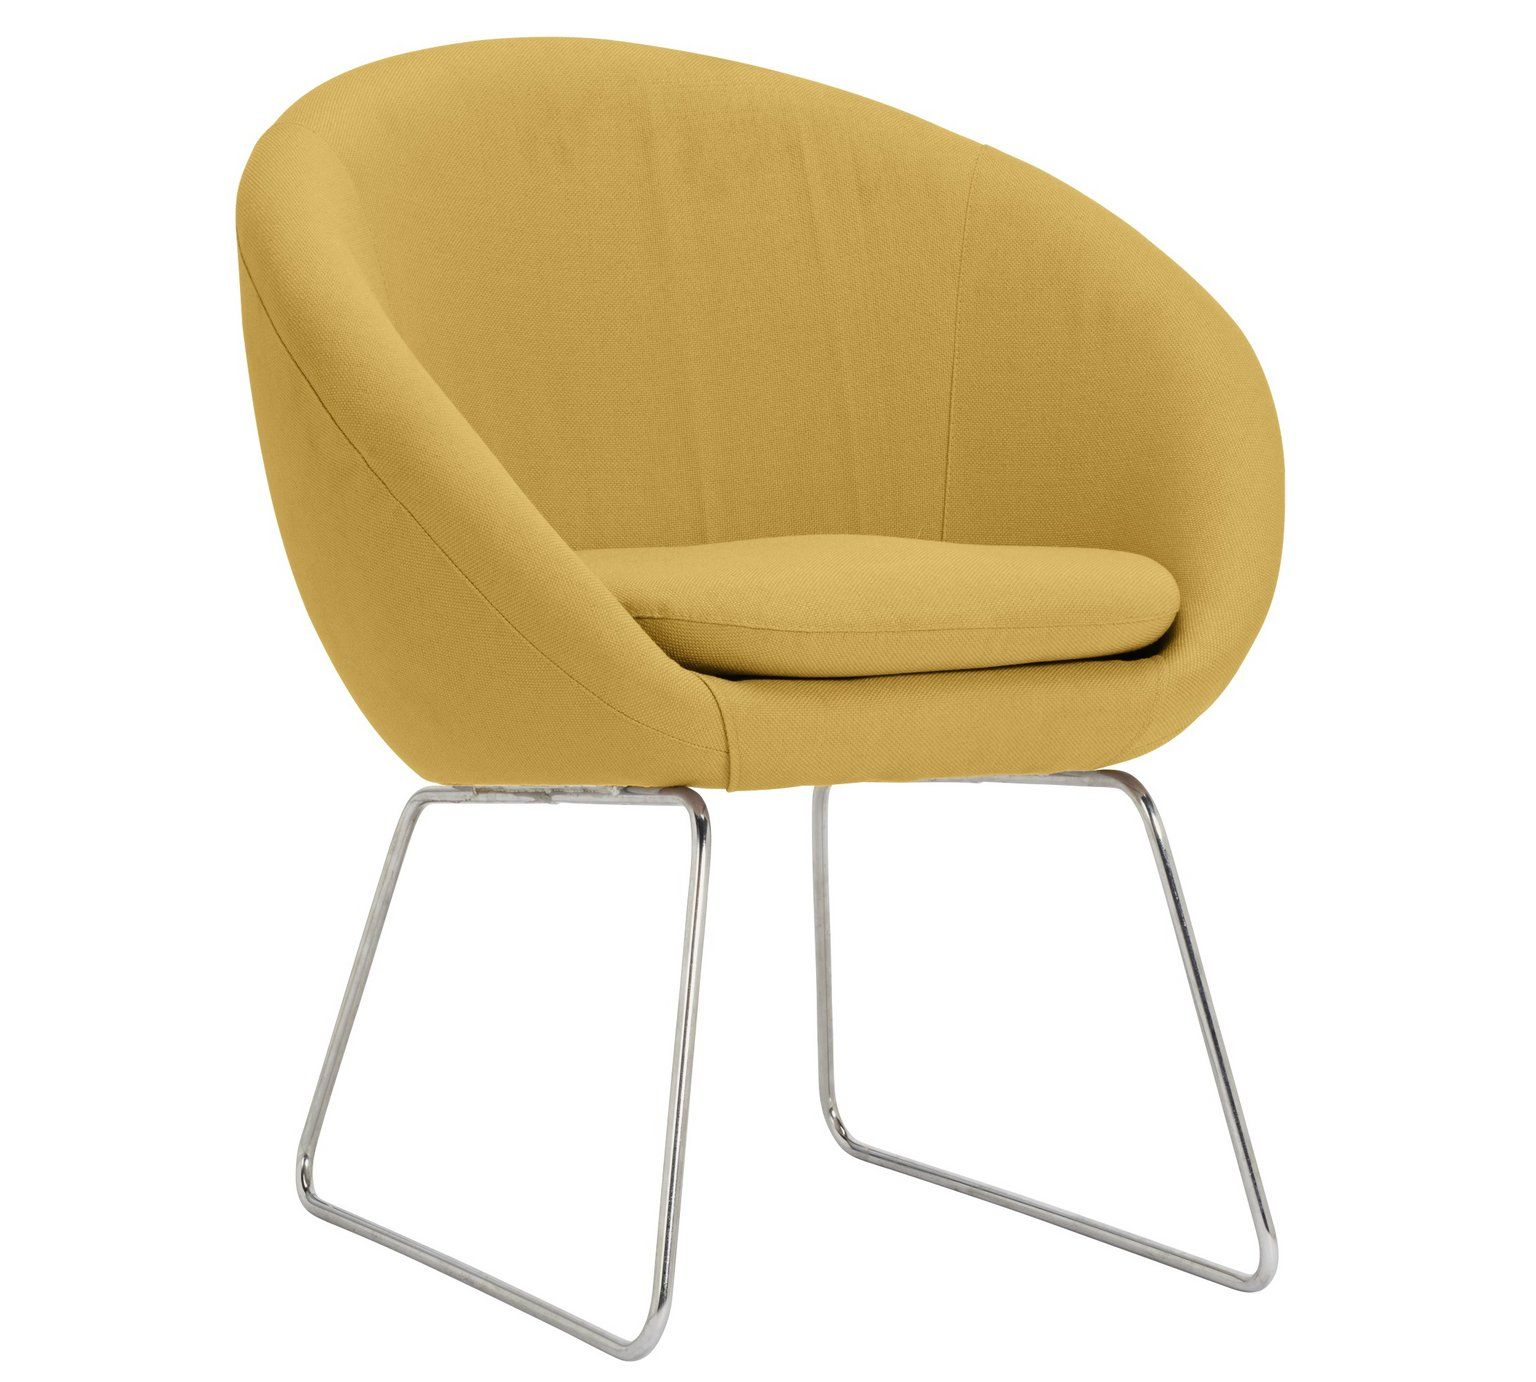 Buy Argos Home Fabric Pod Chair Yellow Armchairs and